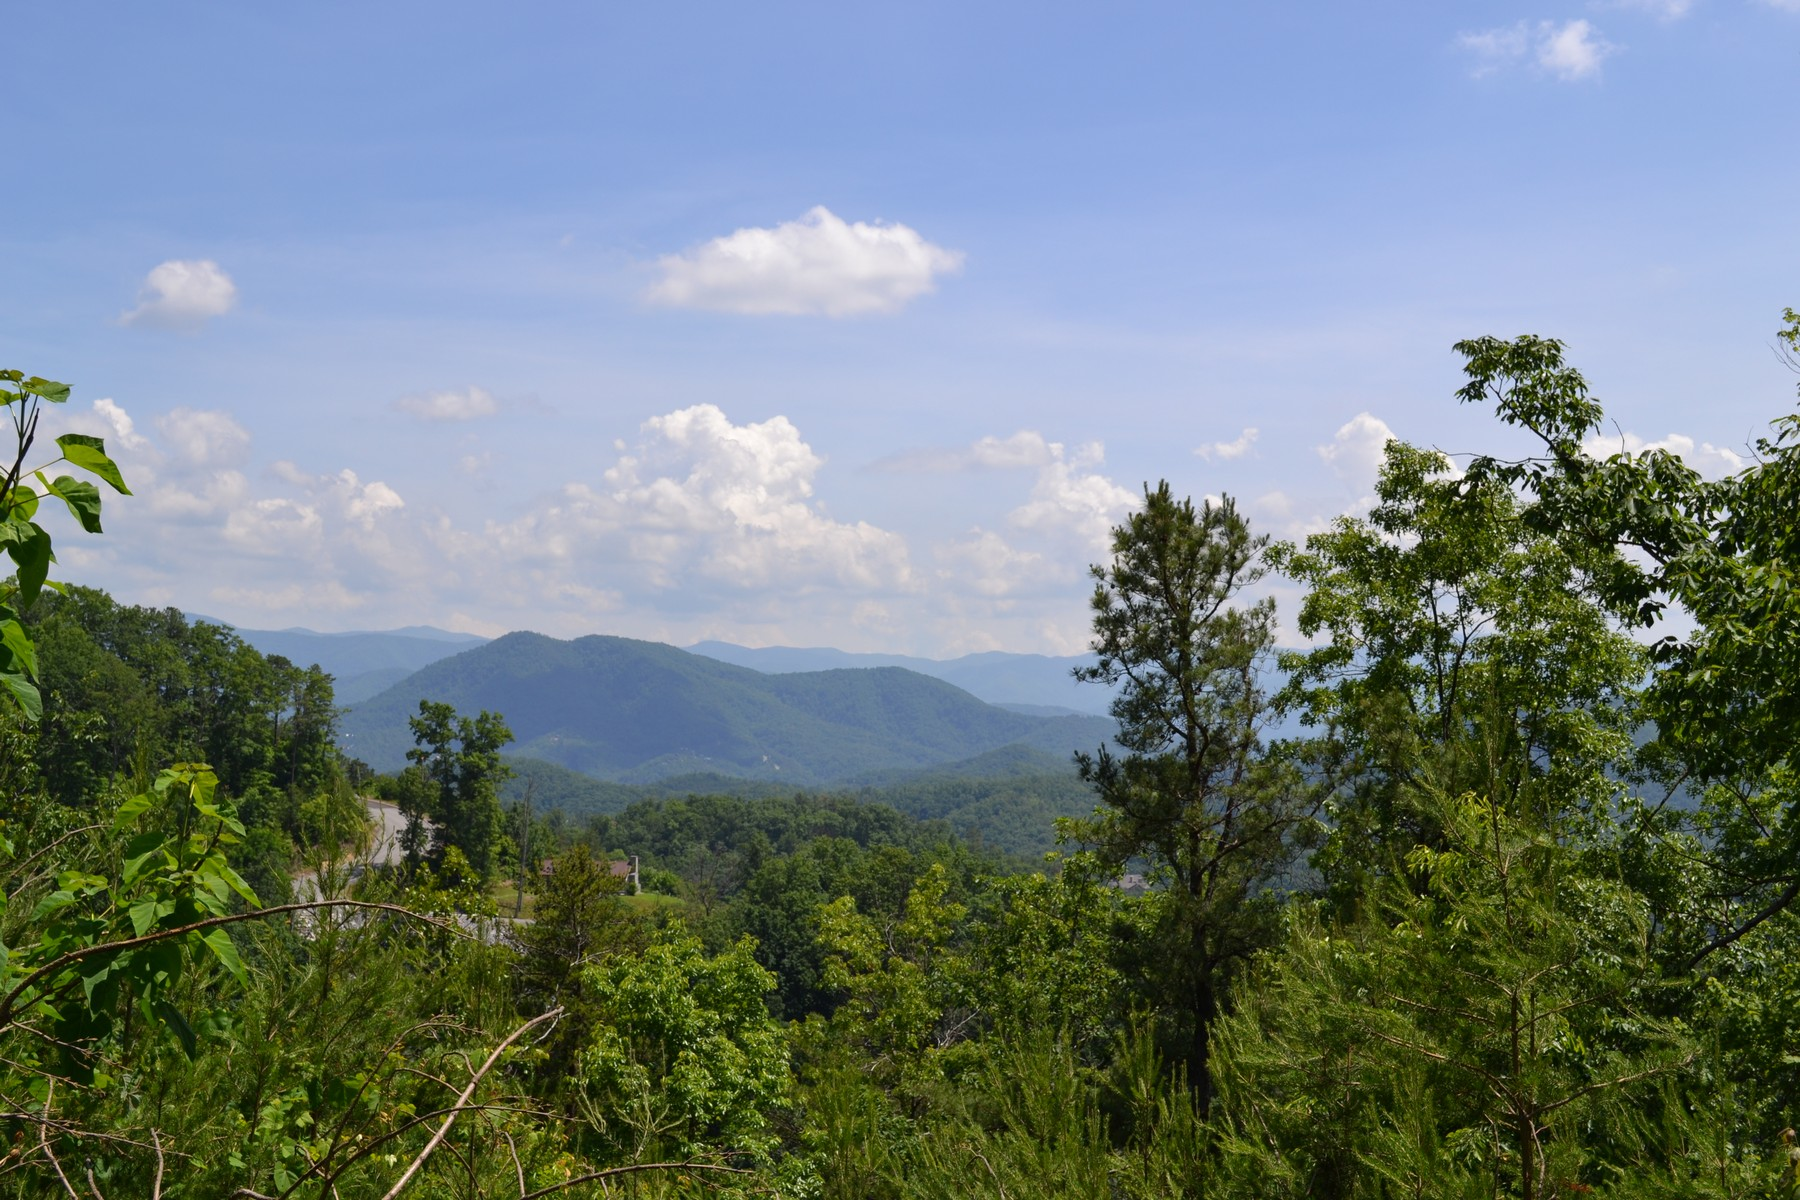 Terreno por un Venta en Prime Lot In Smoky Mountains Settlers View Lane Lot 117E Sevierville, Tennessee 37876 Estados Unidos